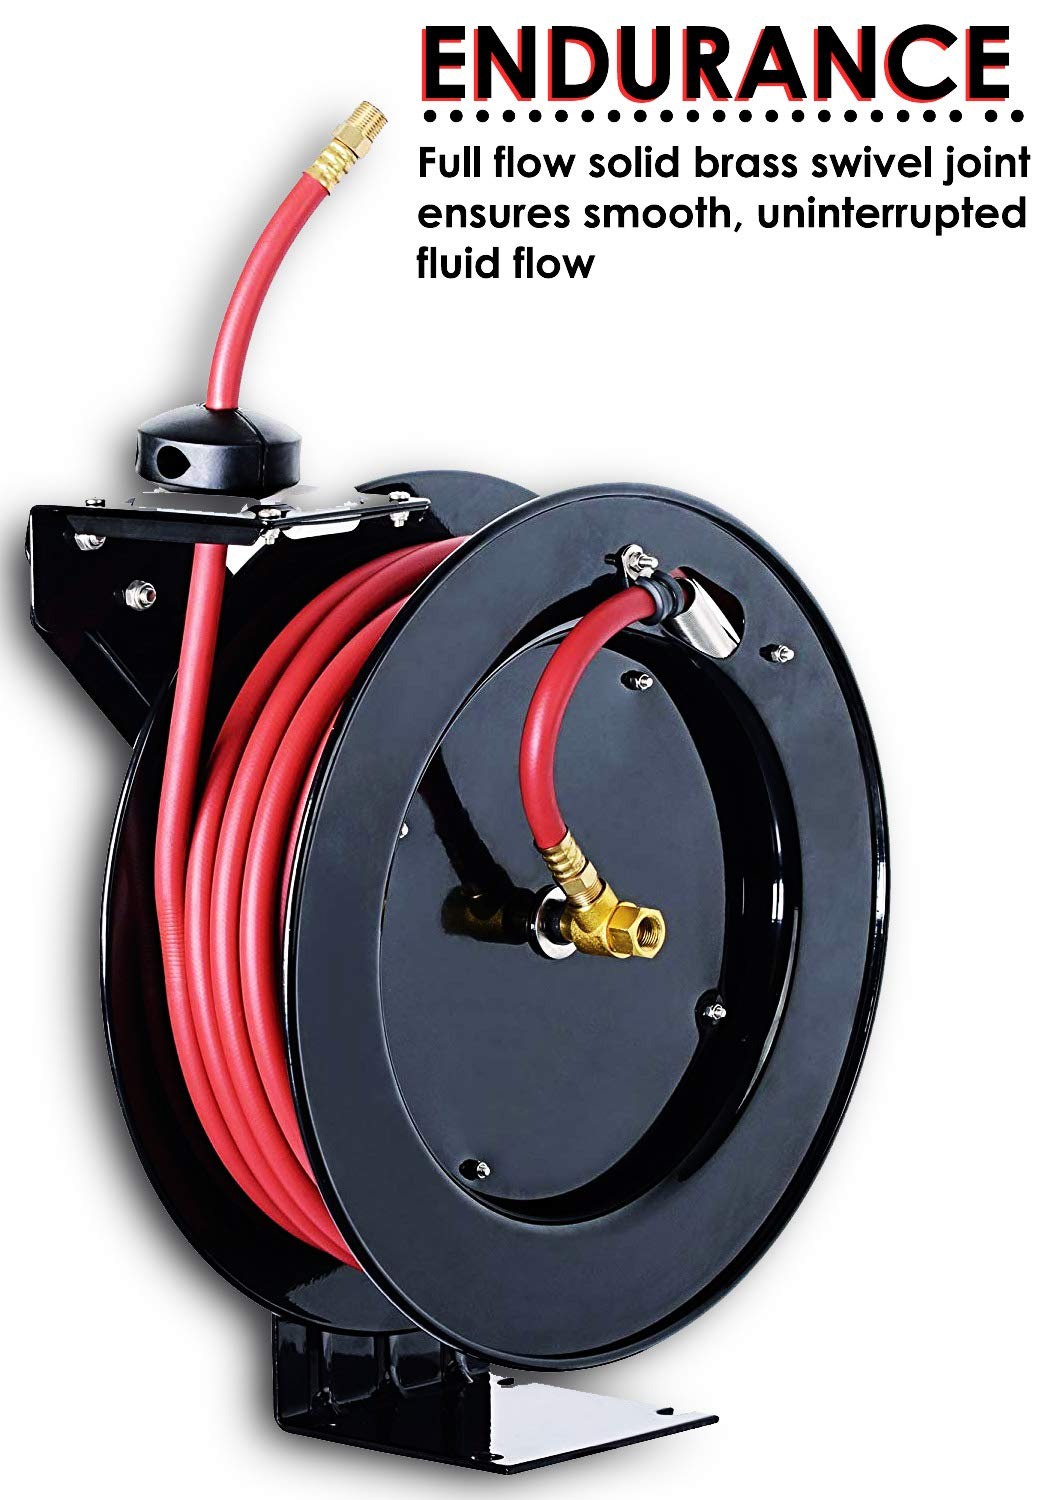 "REELWORKS Air-Hose-Reel Retractable 3/8"" x 50\' Max 300 Spring Driven Steel Construction Heavy Duty Industrial PSI Premium Commercial SBR Rubber Hose 71N7VqBLb2L._SL1500_"